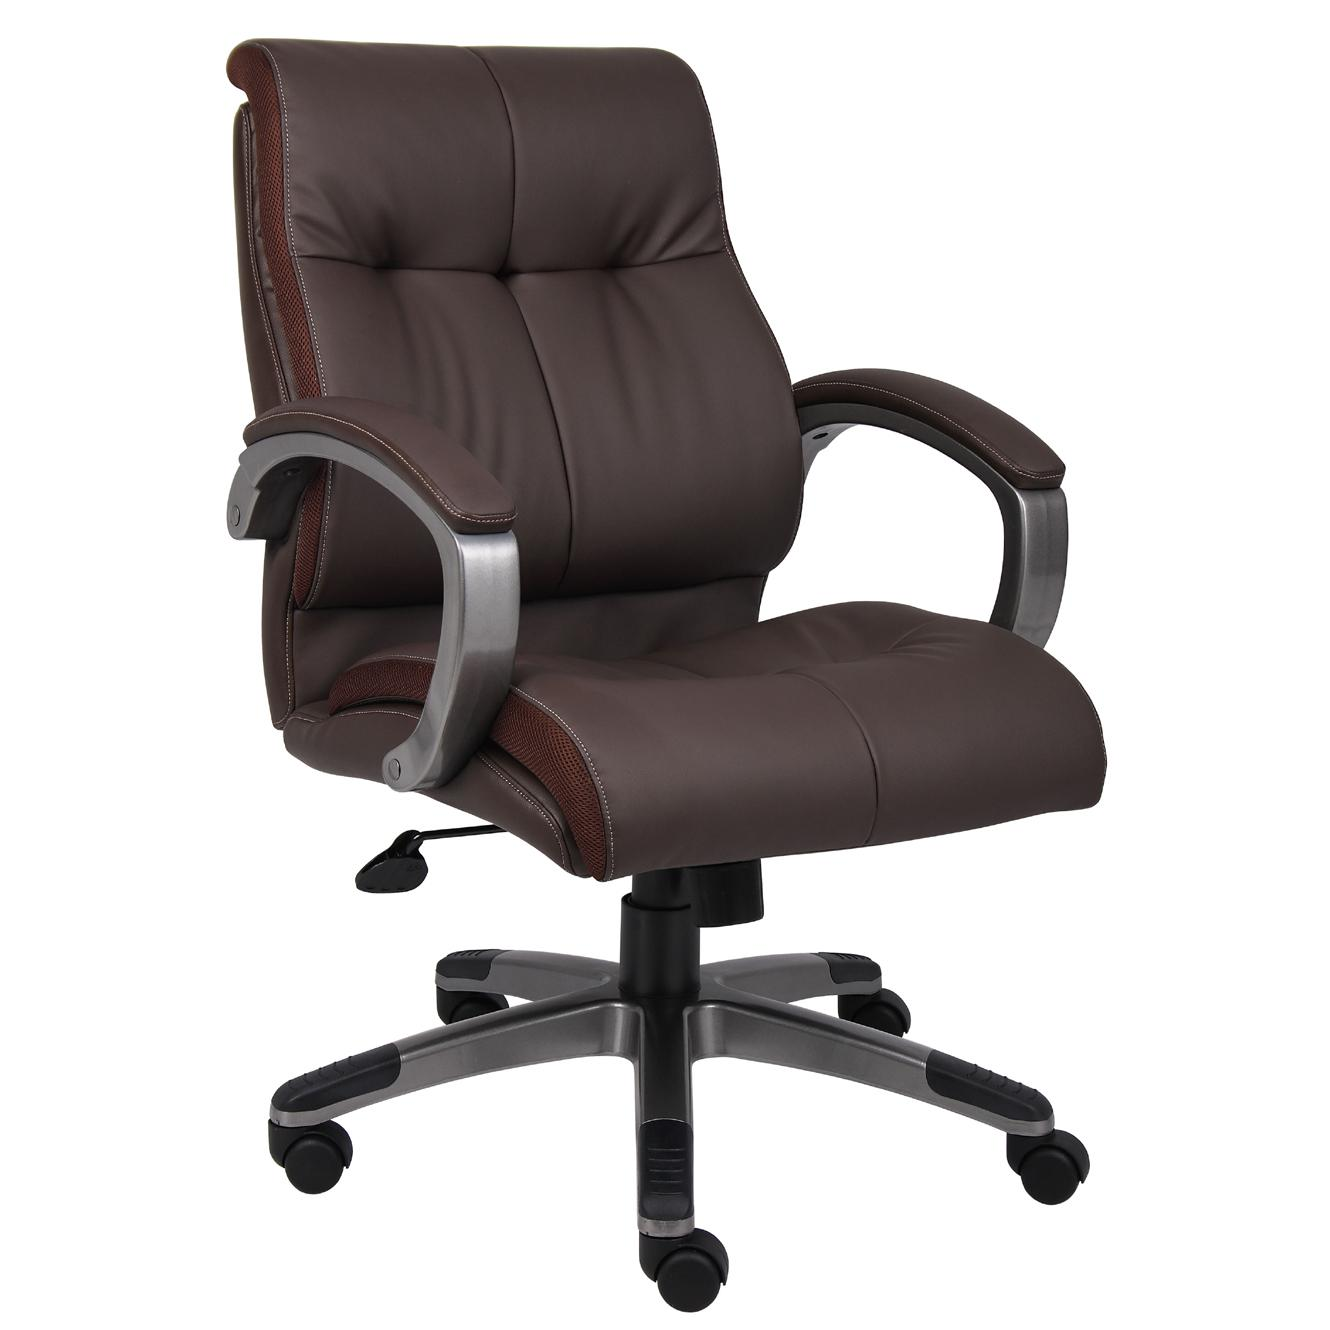 Boss Brown Leather Double Plush Mid-back Ergonomic Chair (Black - Silver Finish)